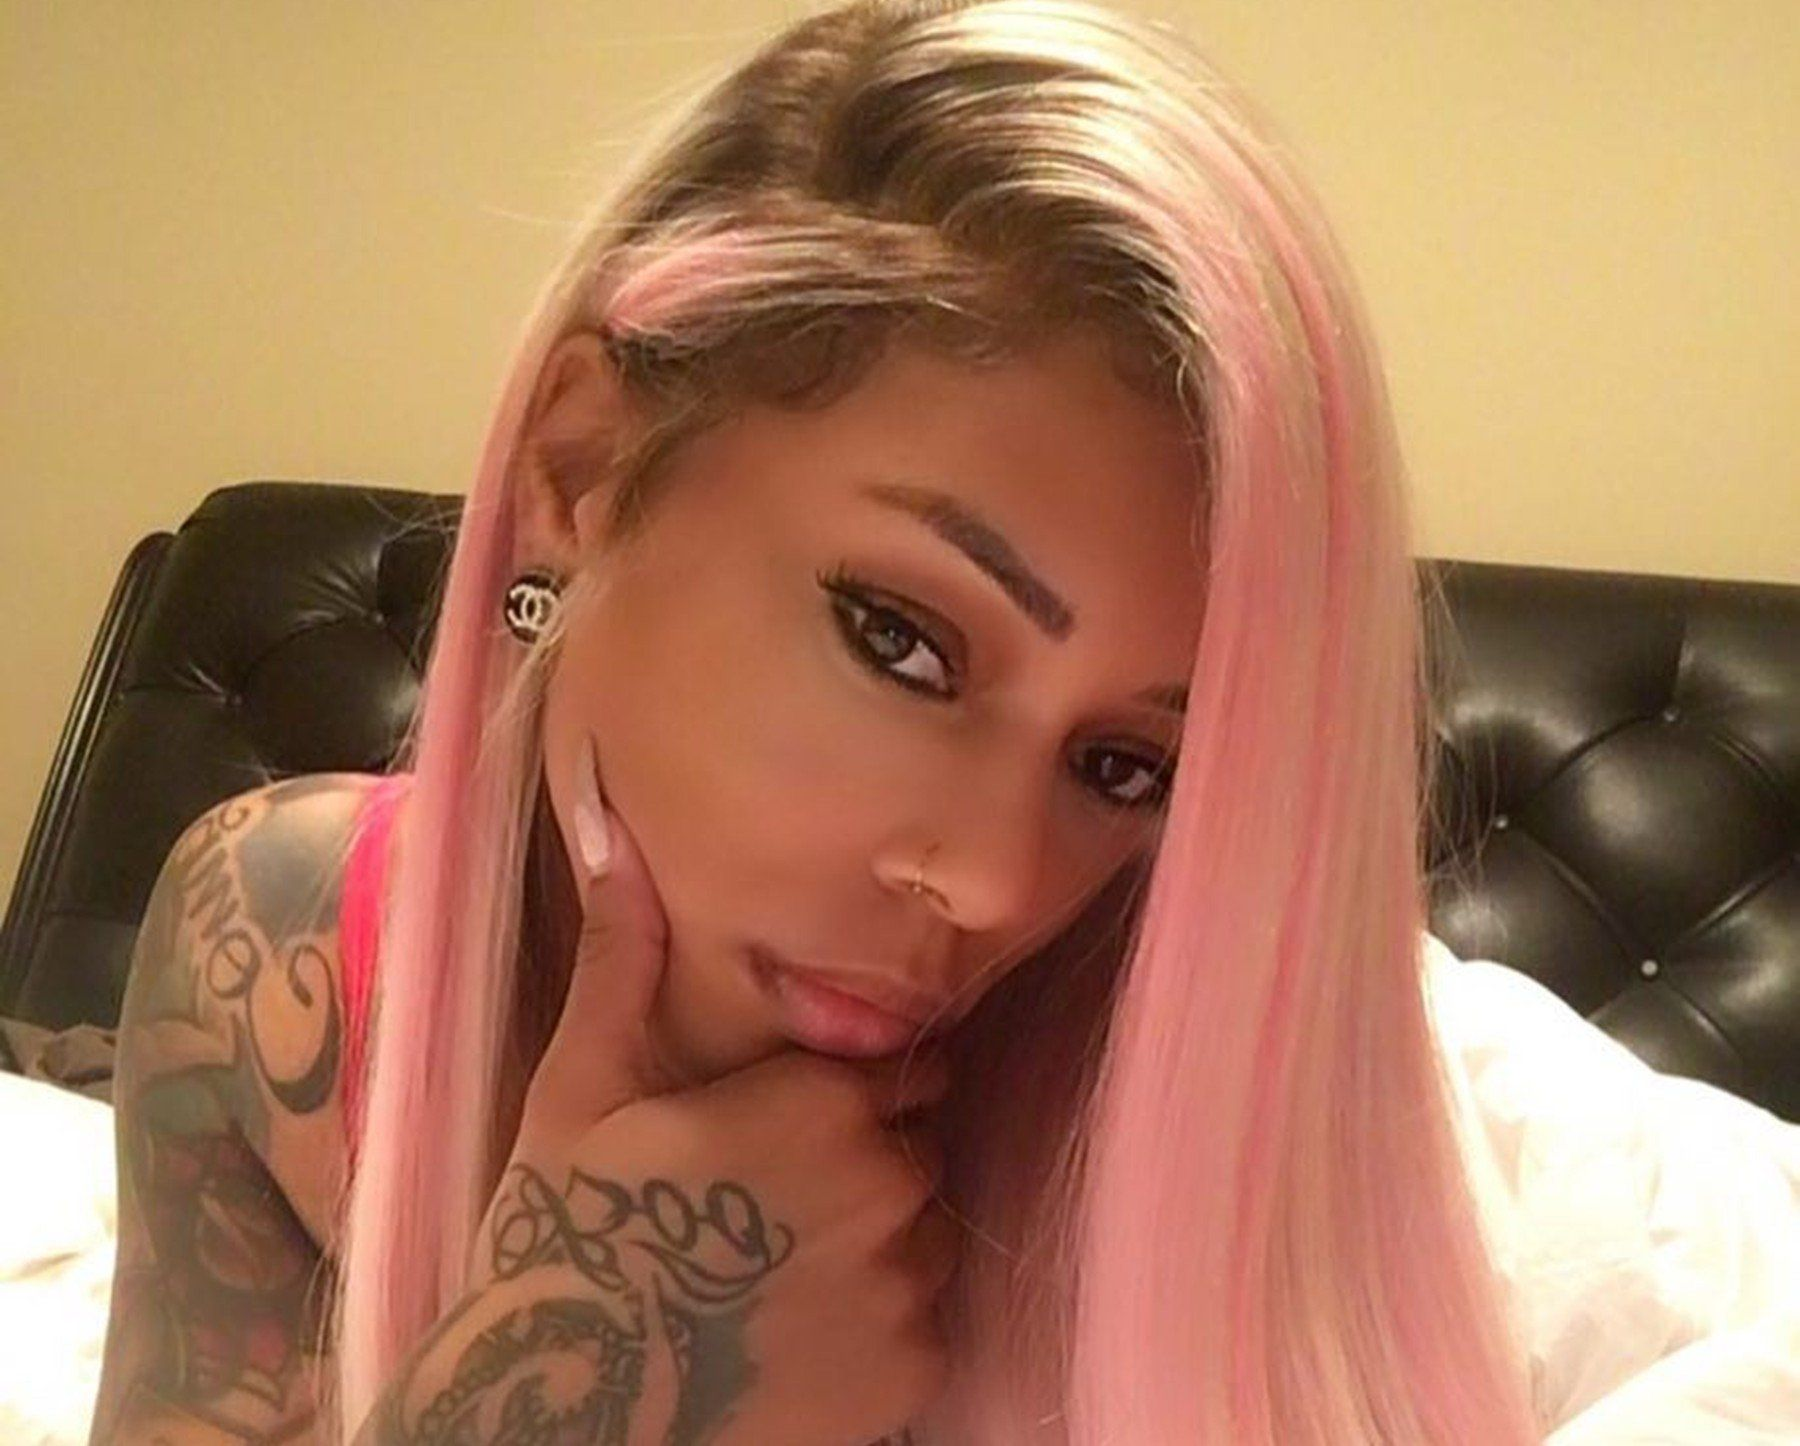 bambi and lil scrappy are done – she is leaving 'love & hip